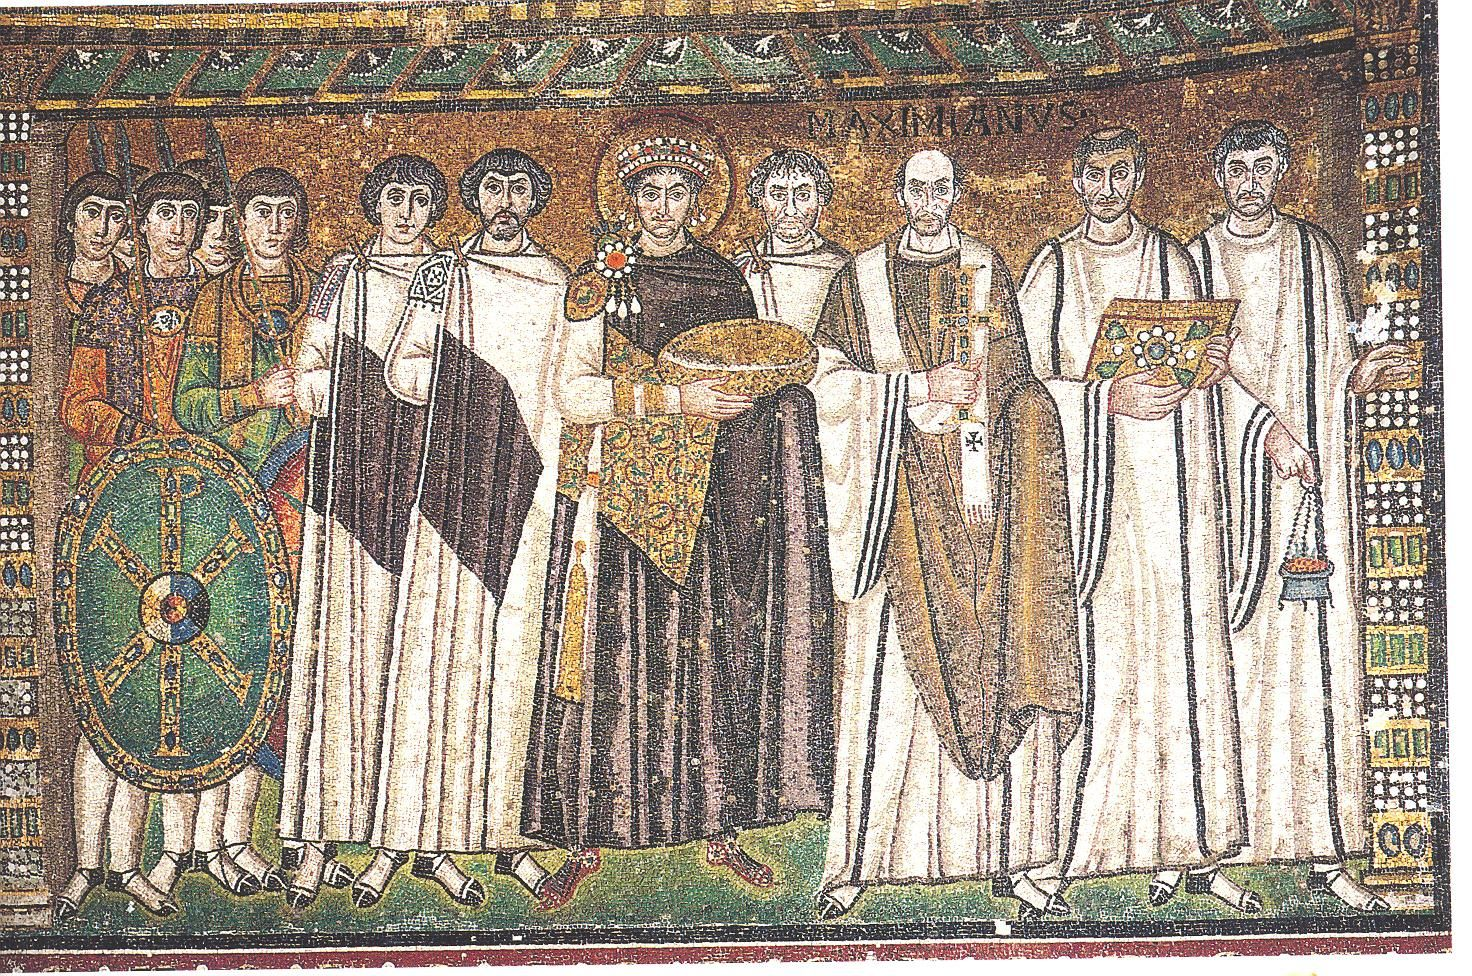 what are some specific ways that spiritual ideas are expressed in byzantine art?